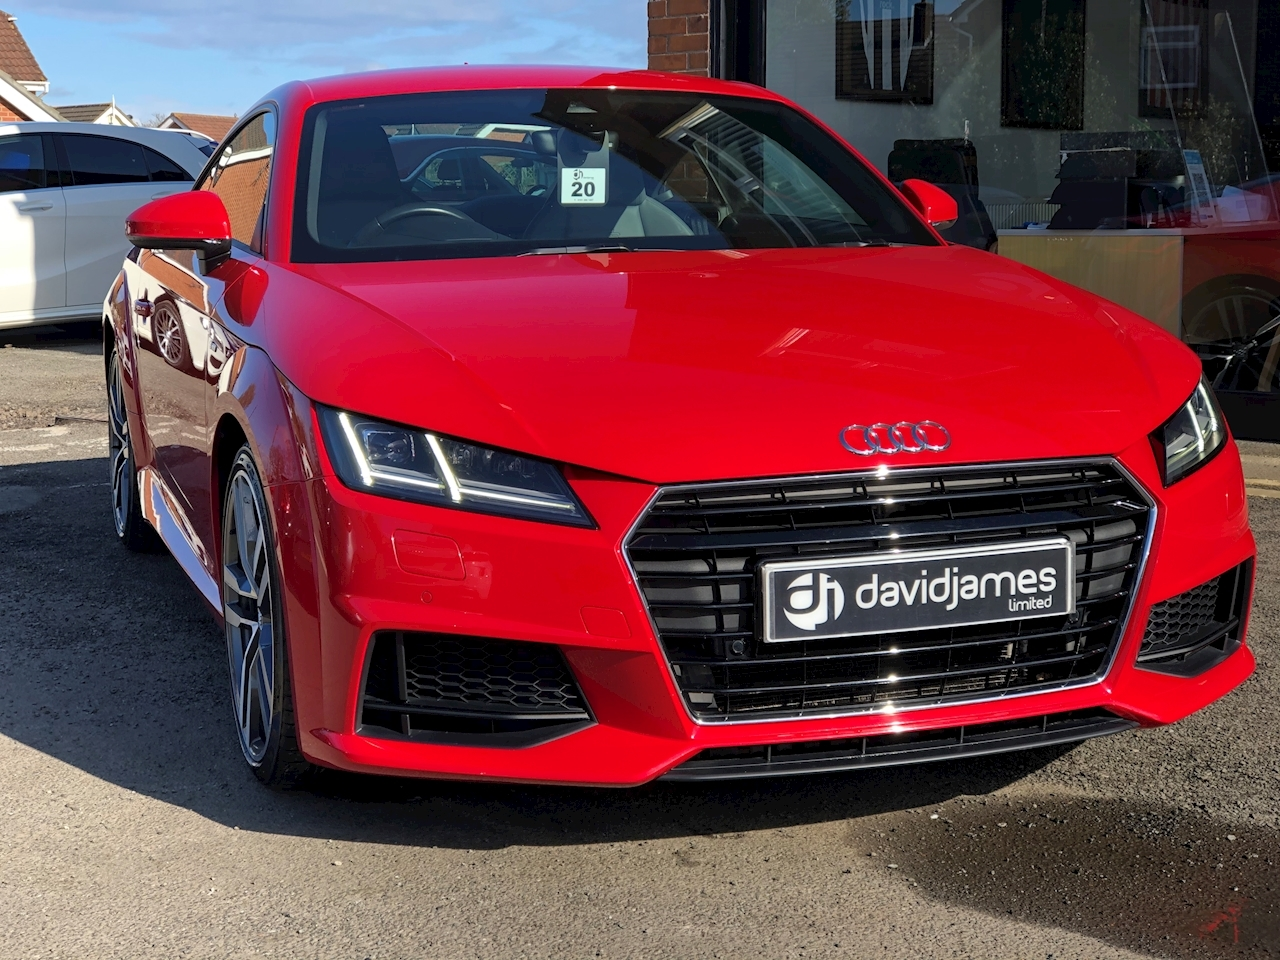 2.0 TFSI S line Coupe 3dr Petrol (s/s) (230 ps)